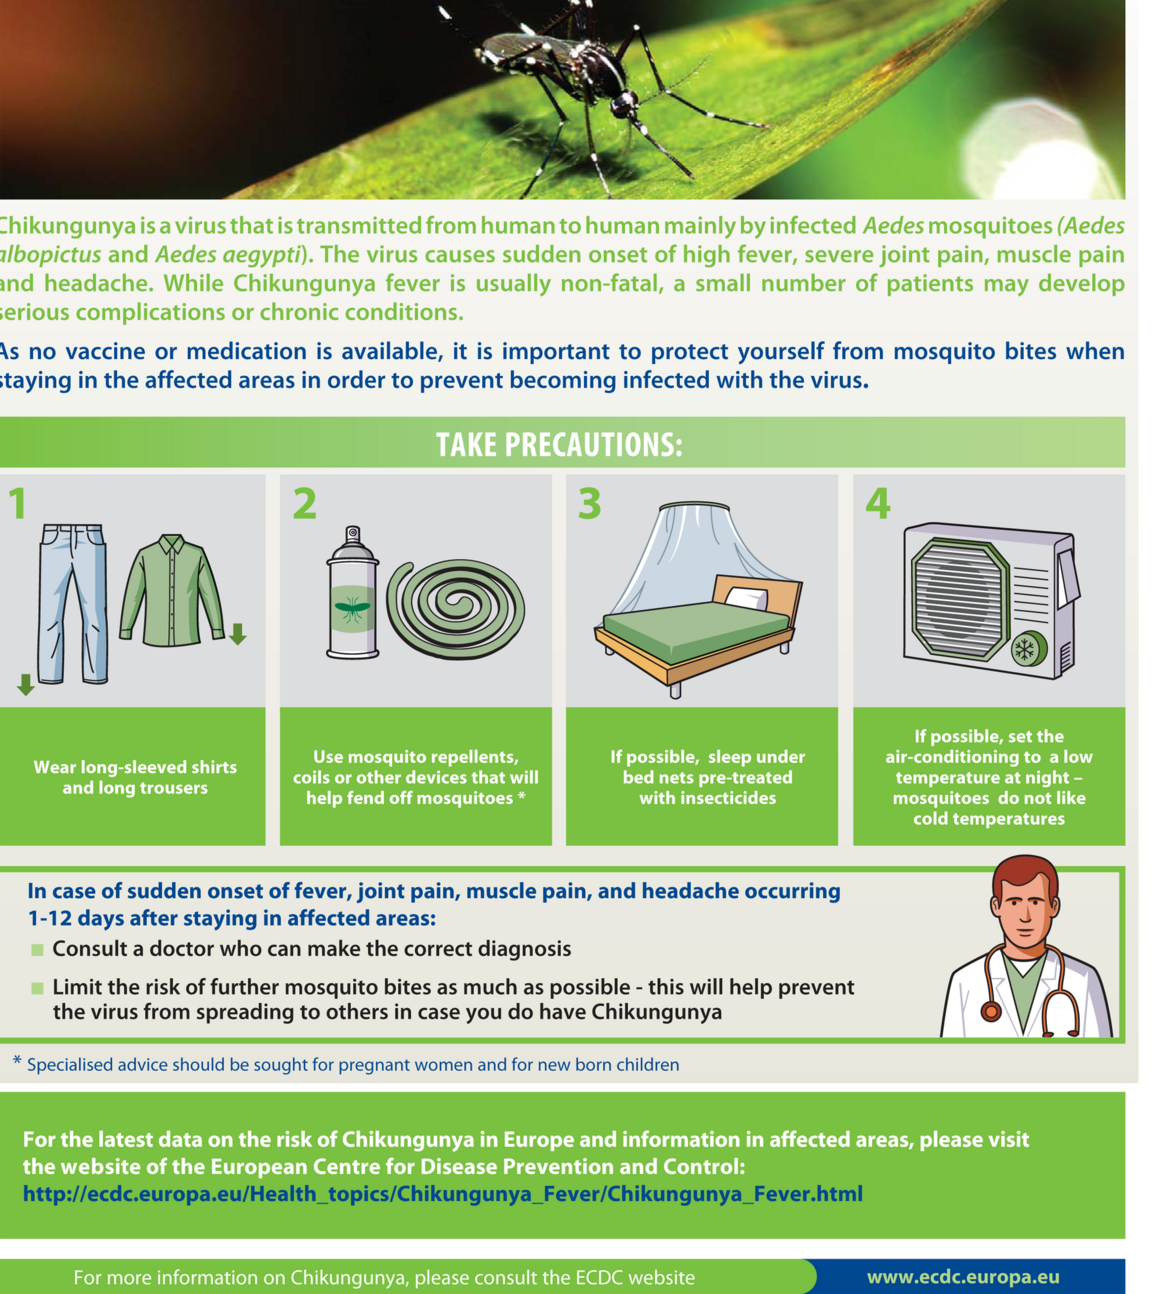 Poster with preventive measures against mosquito bites